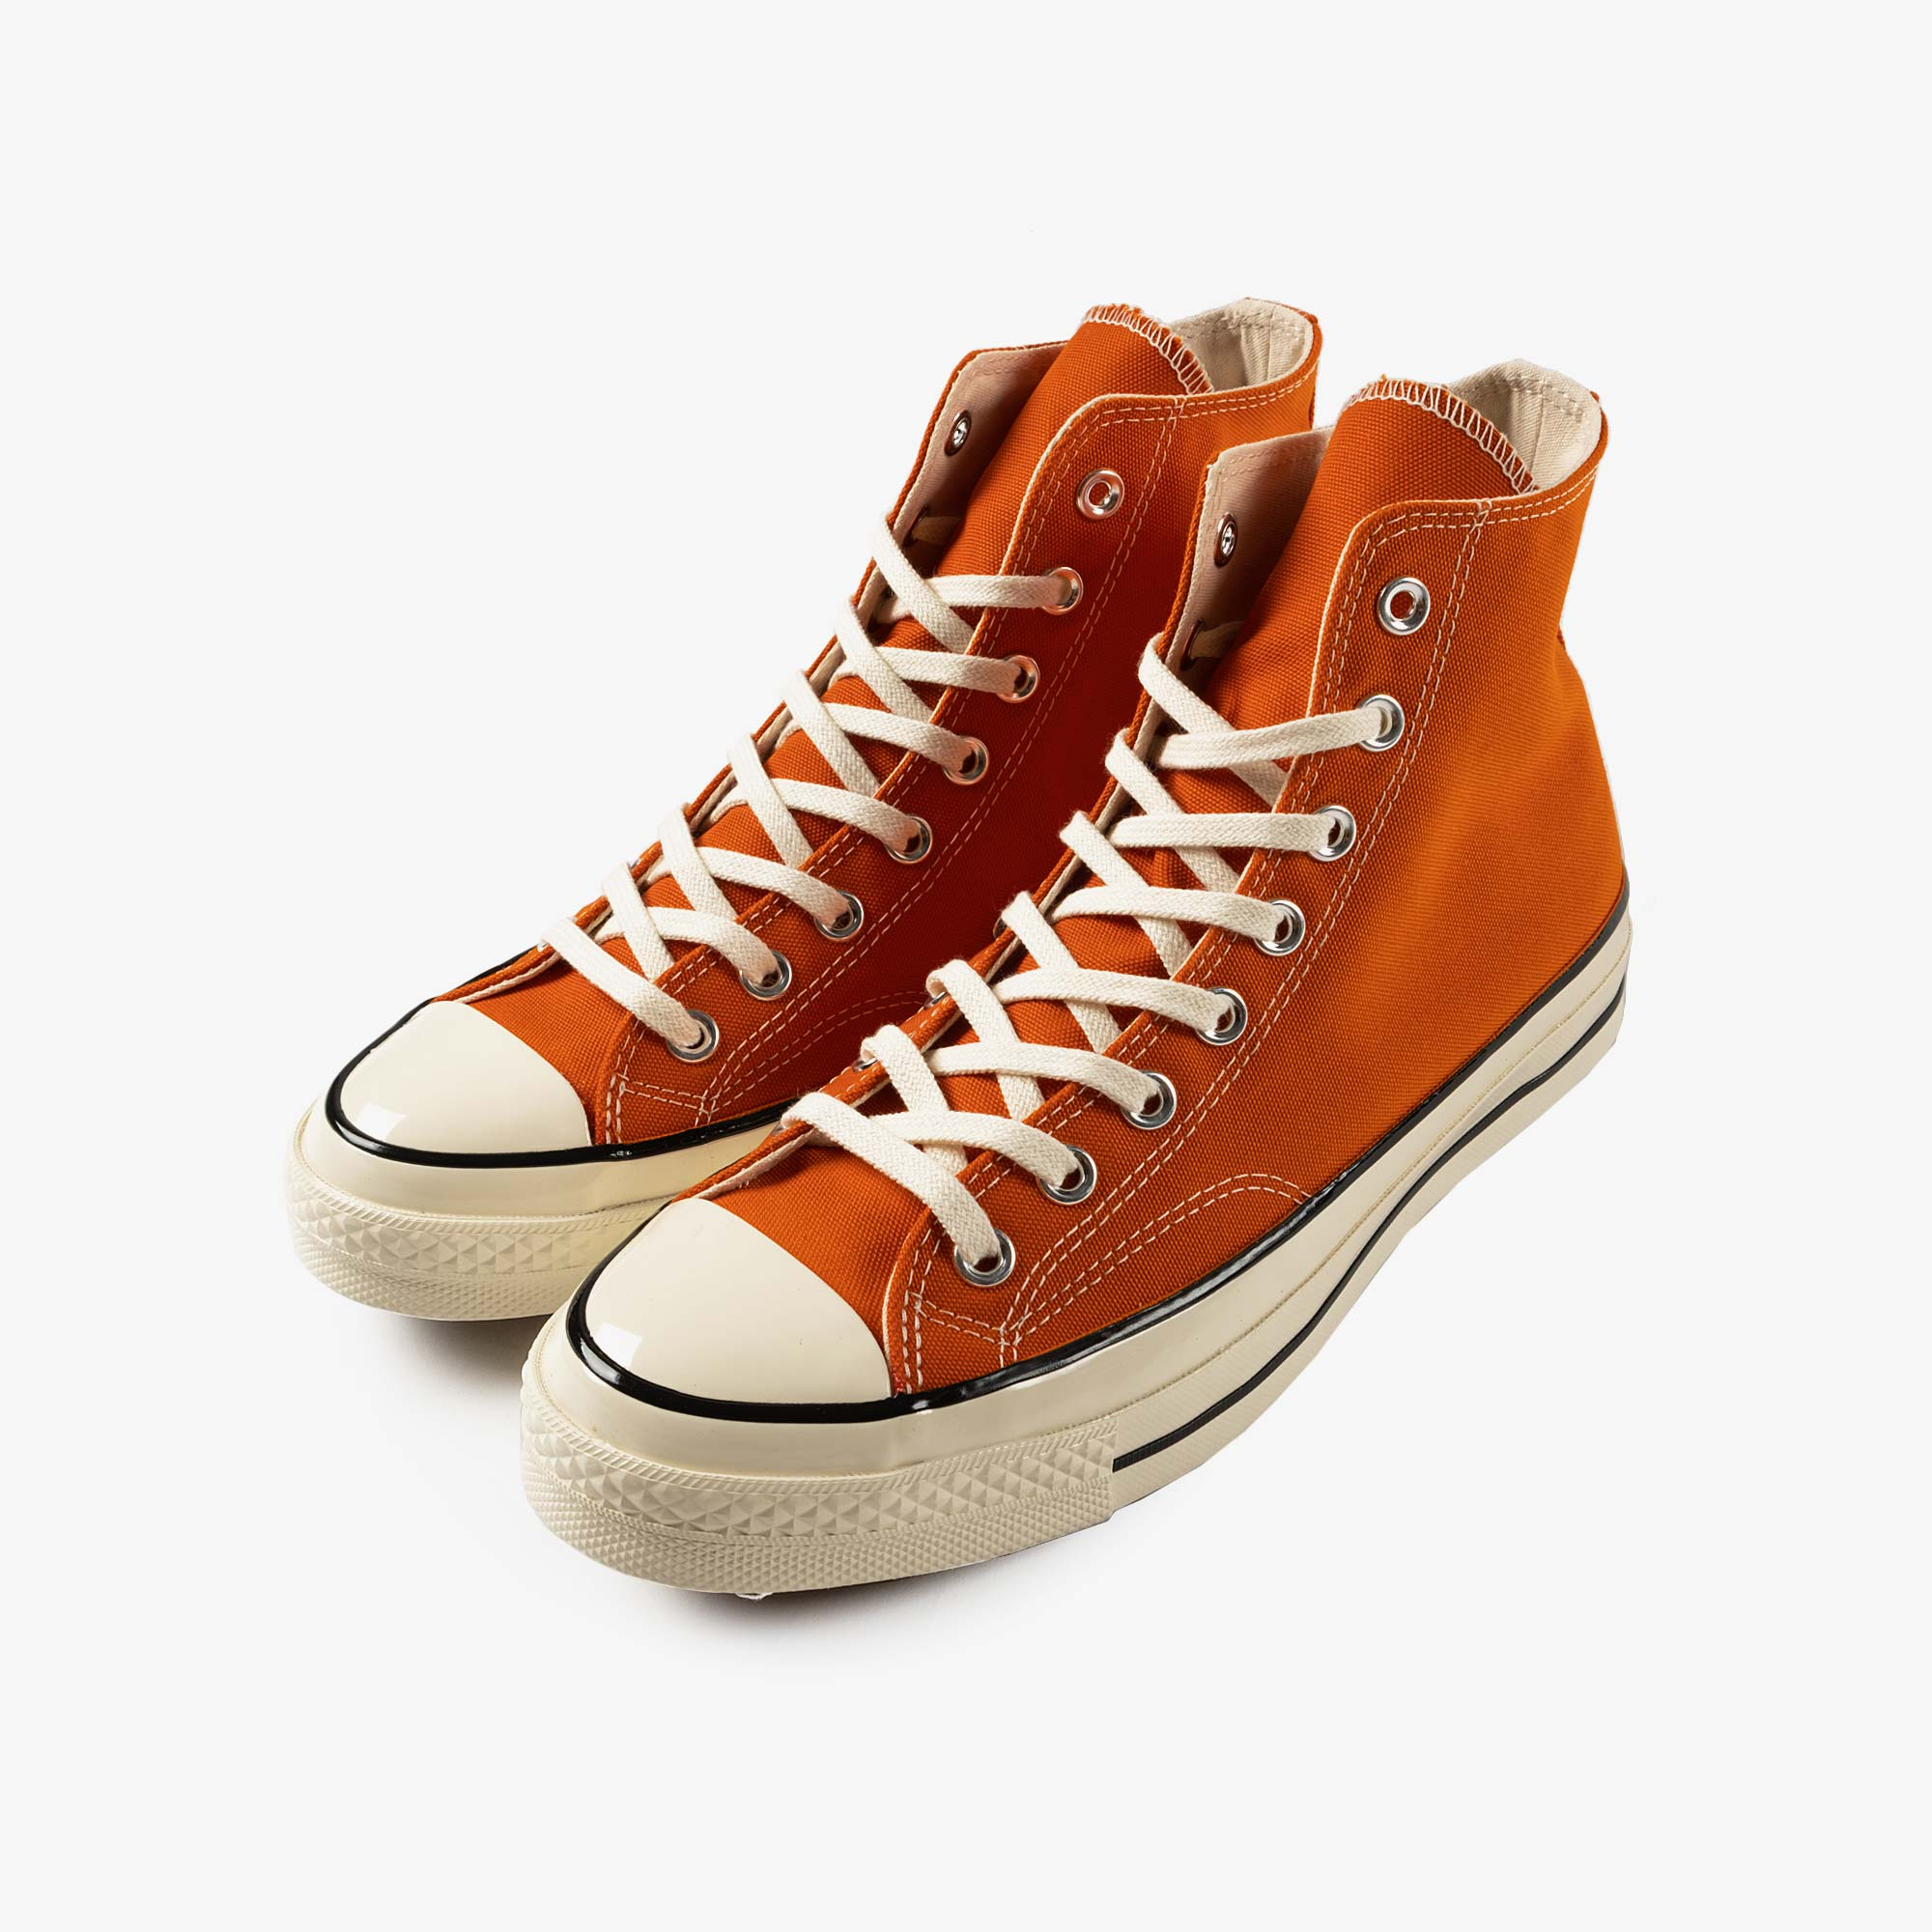 Converse Chuck Taylor Hi 70 Recycled Canvas - Fire Pit 2